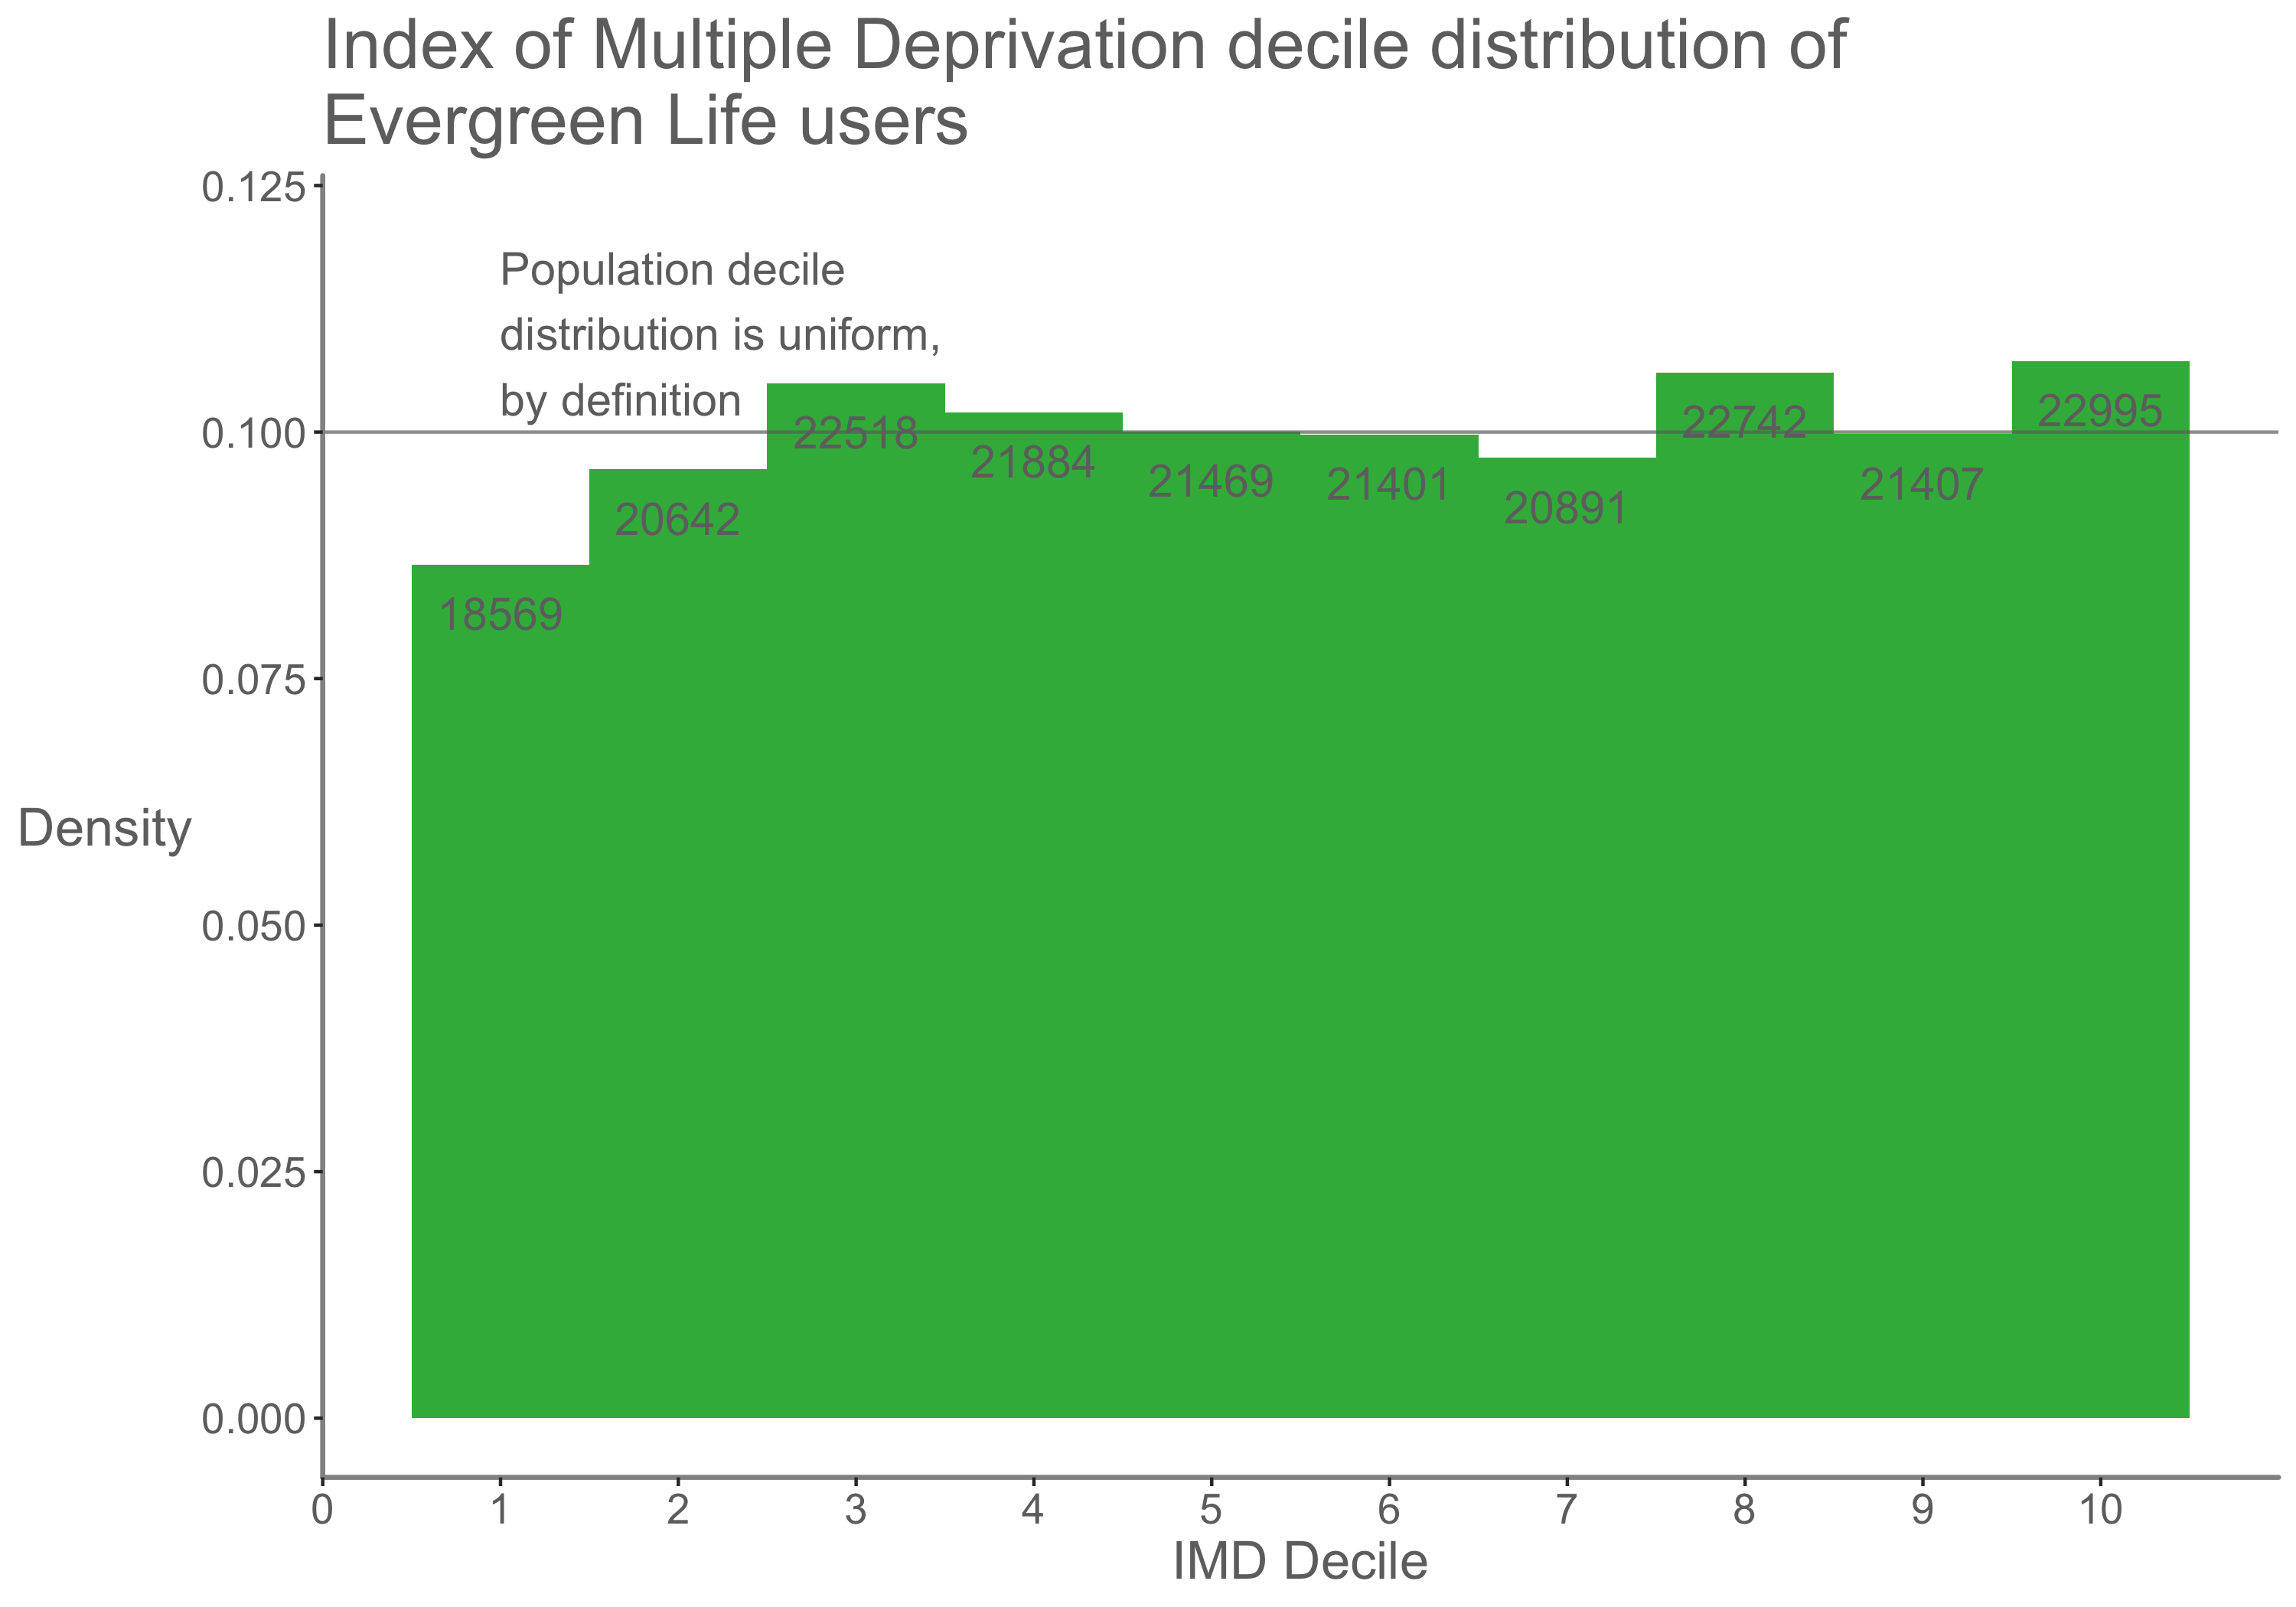 Distribution of Evergreen Life users